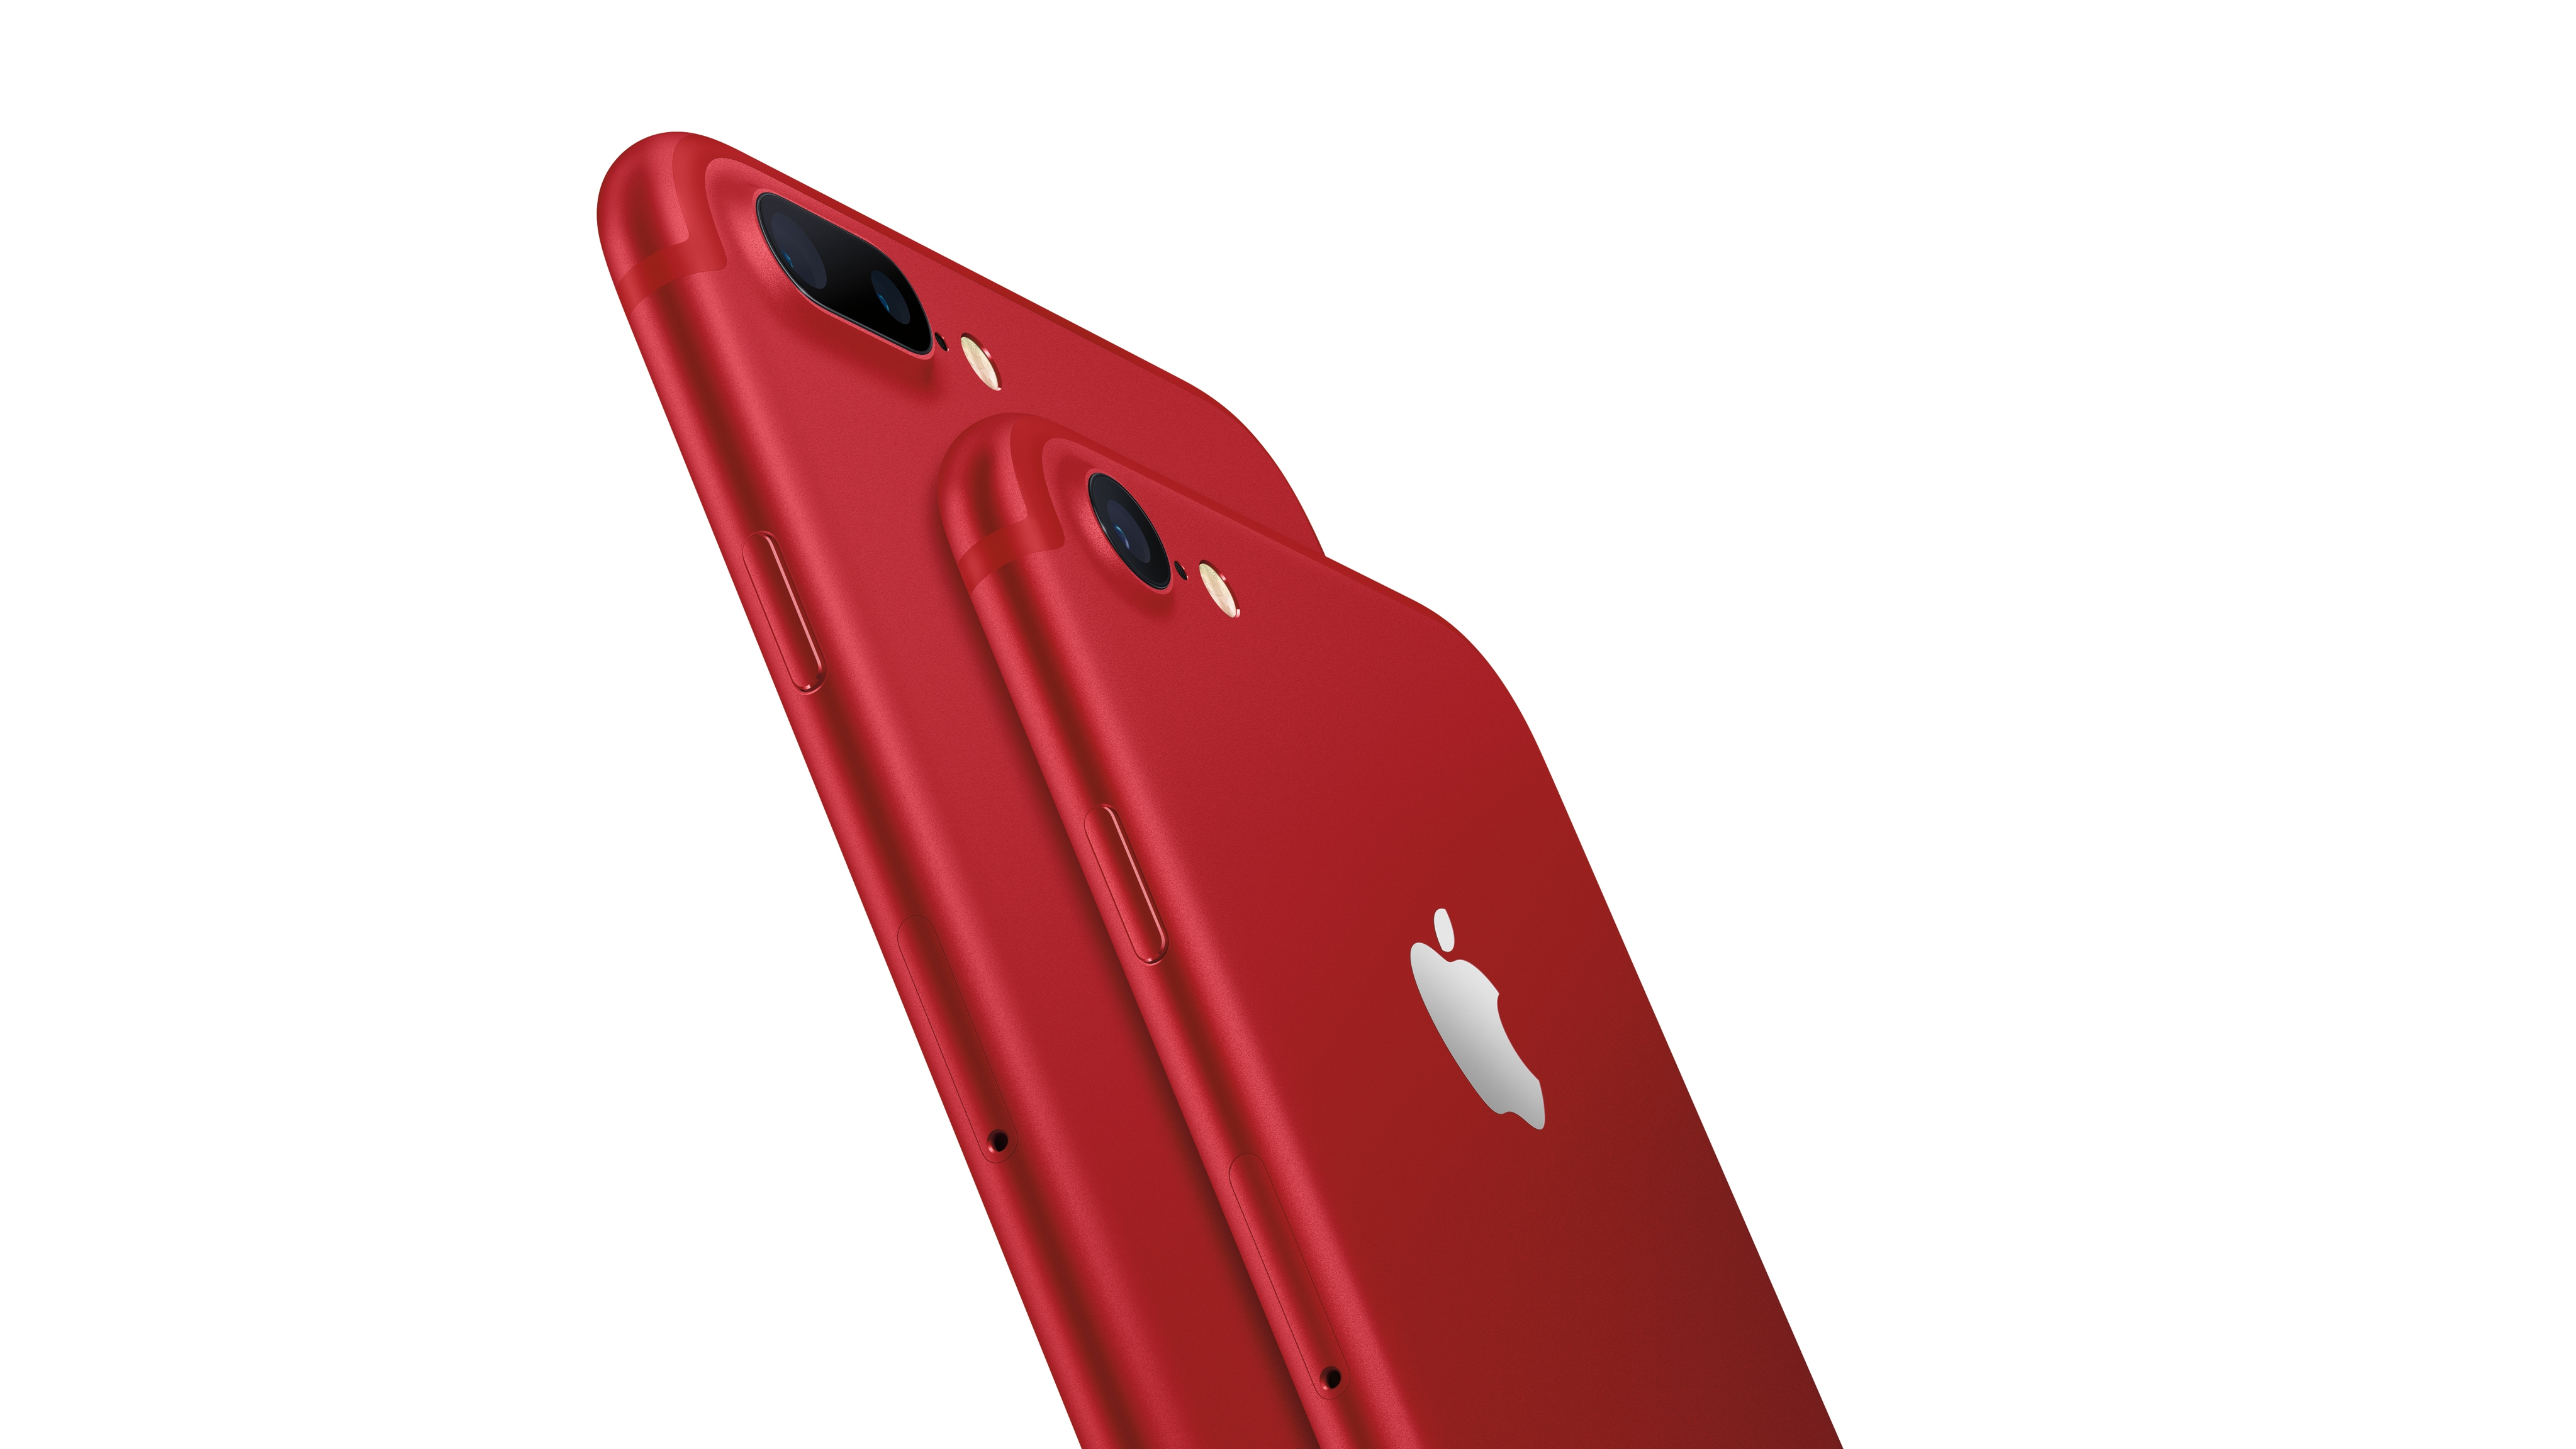 iphone_7_and_iphone_7_plus_product_red_hero_lockup_2_up_on_white_pr-print-445f87c7-96b7-4c74-8433-845c87518abd